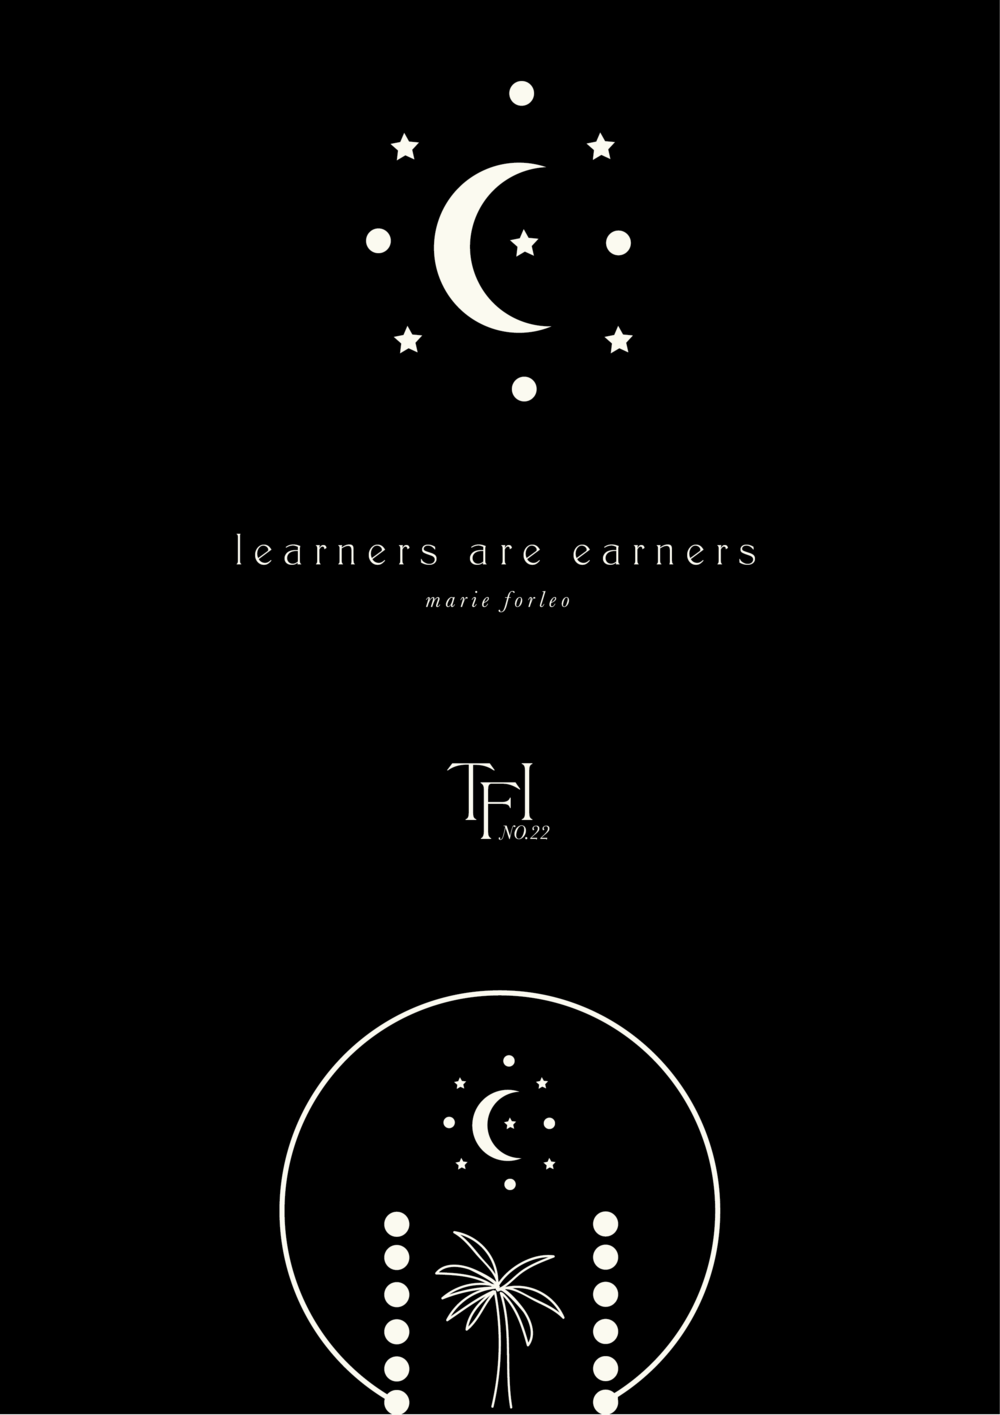 The Freelance Issue No.22 // Learners Are Earners (Phylleli Design Studio and Blog)